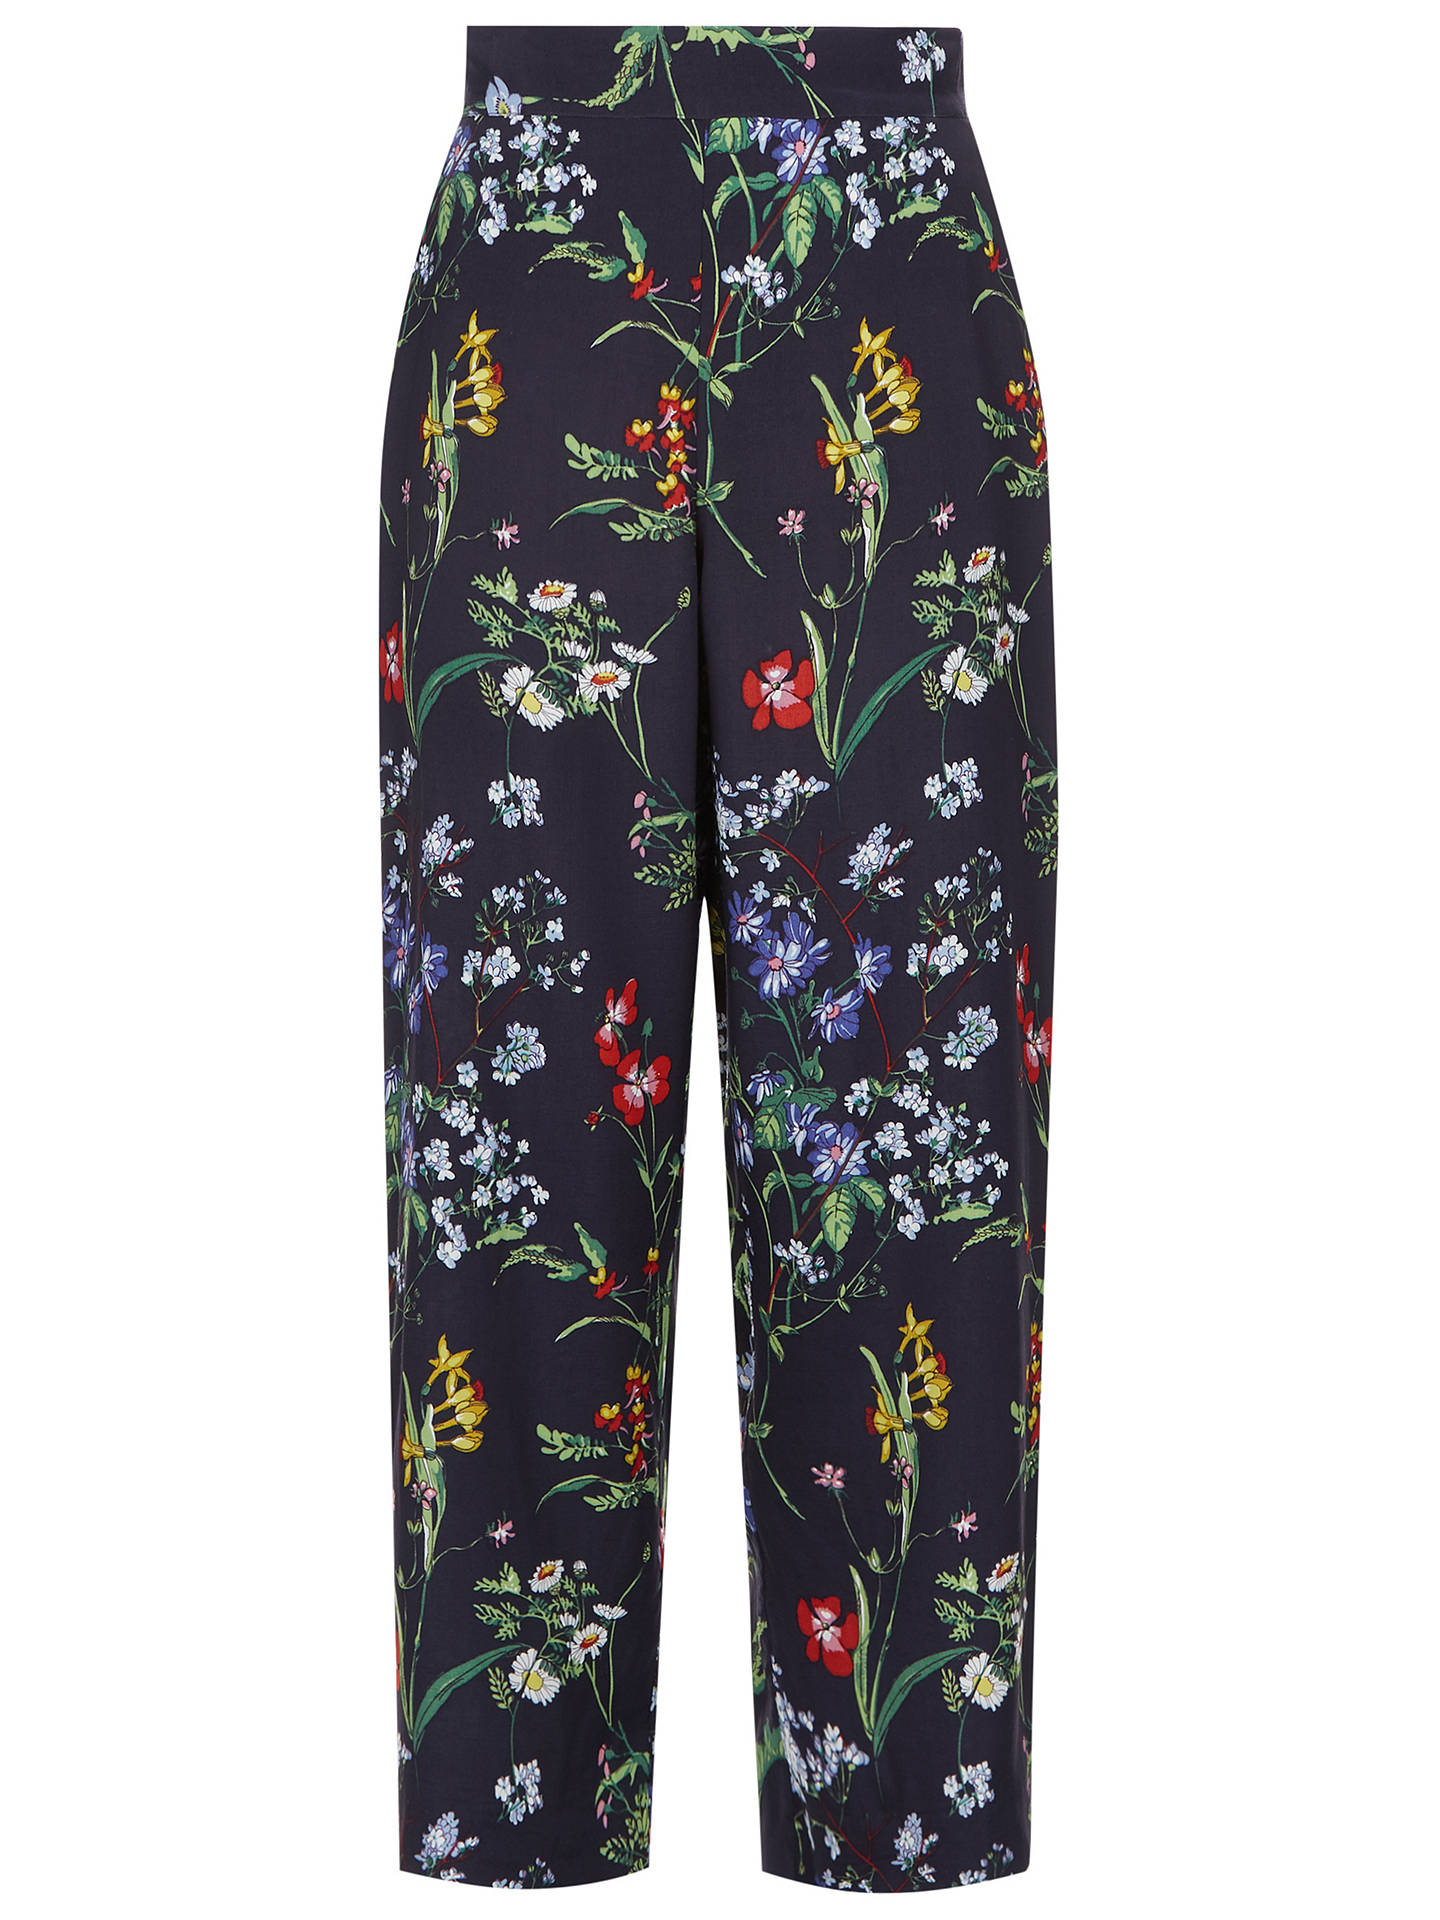 BuyHobbs Marianne Trousers, Blue Multi, 10 Online at johnlewis.com